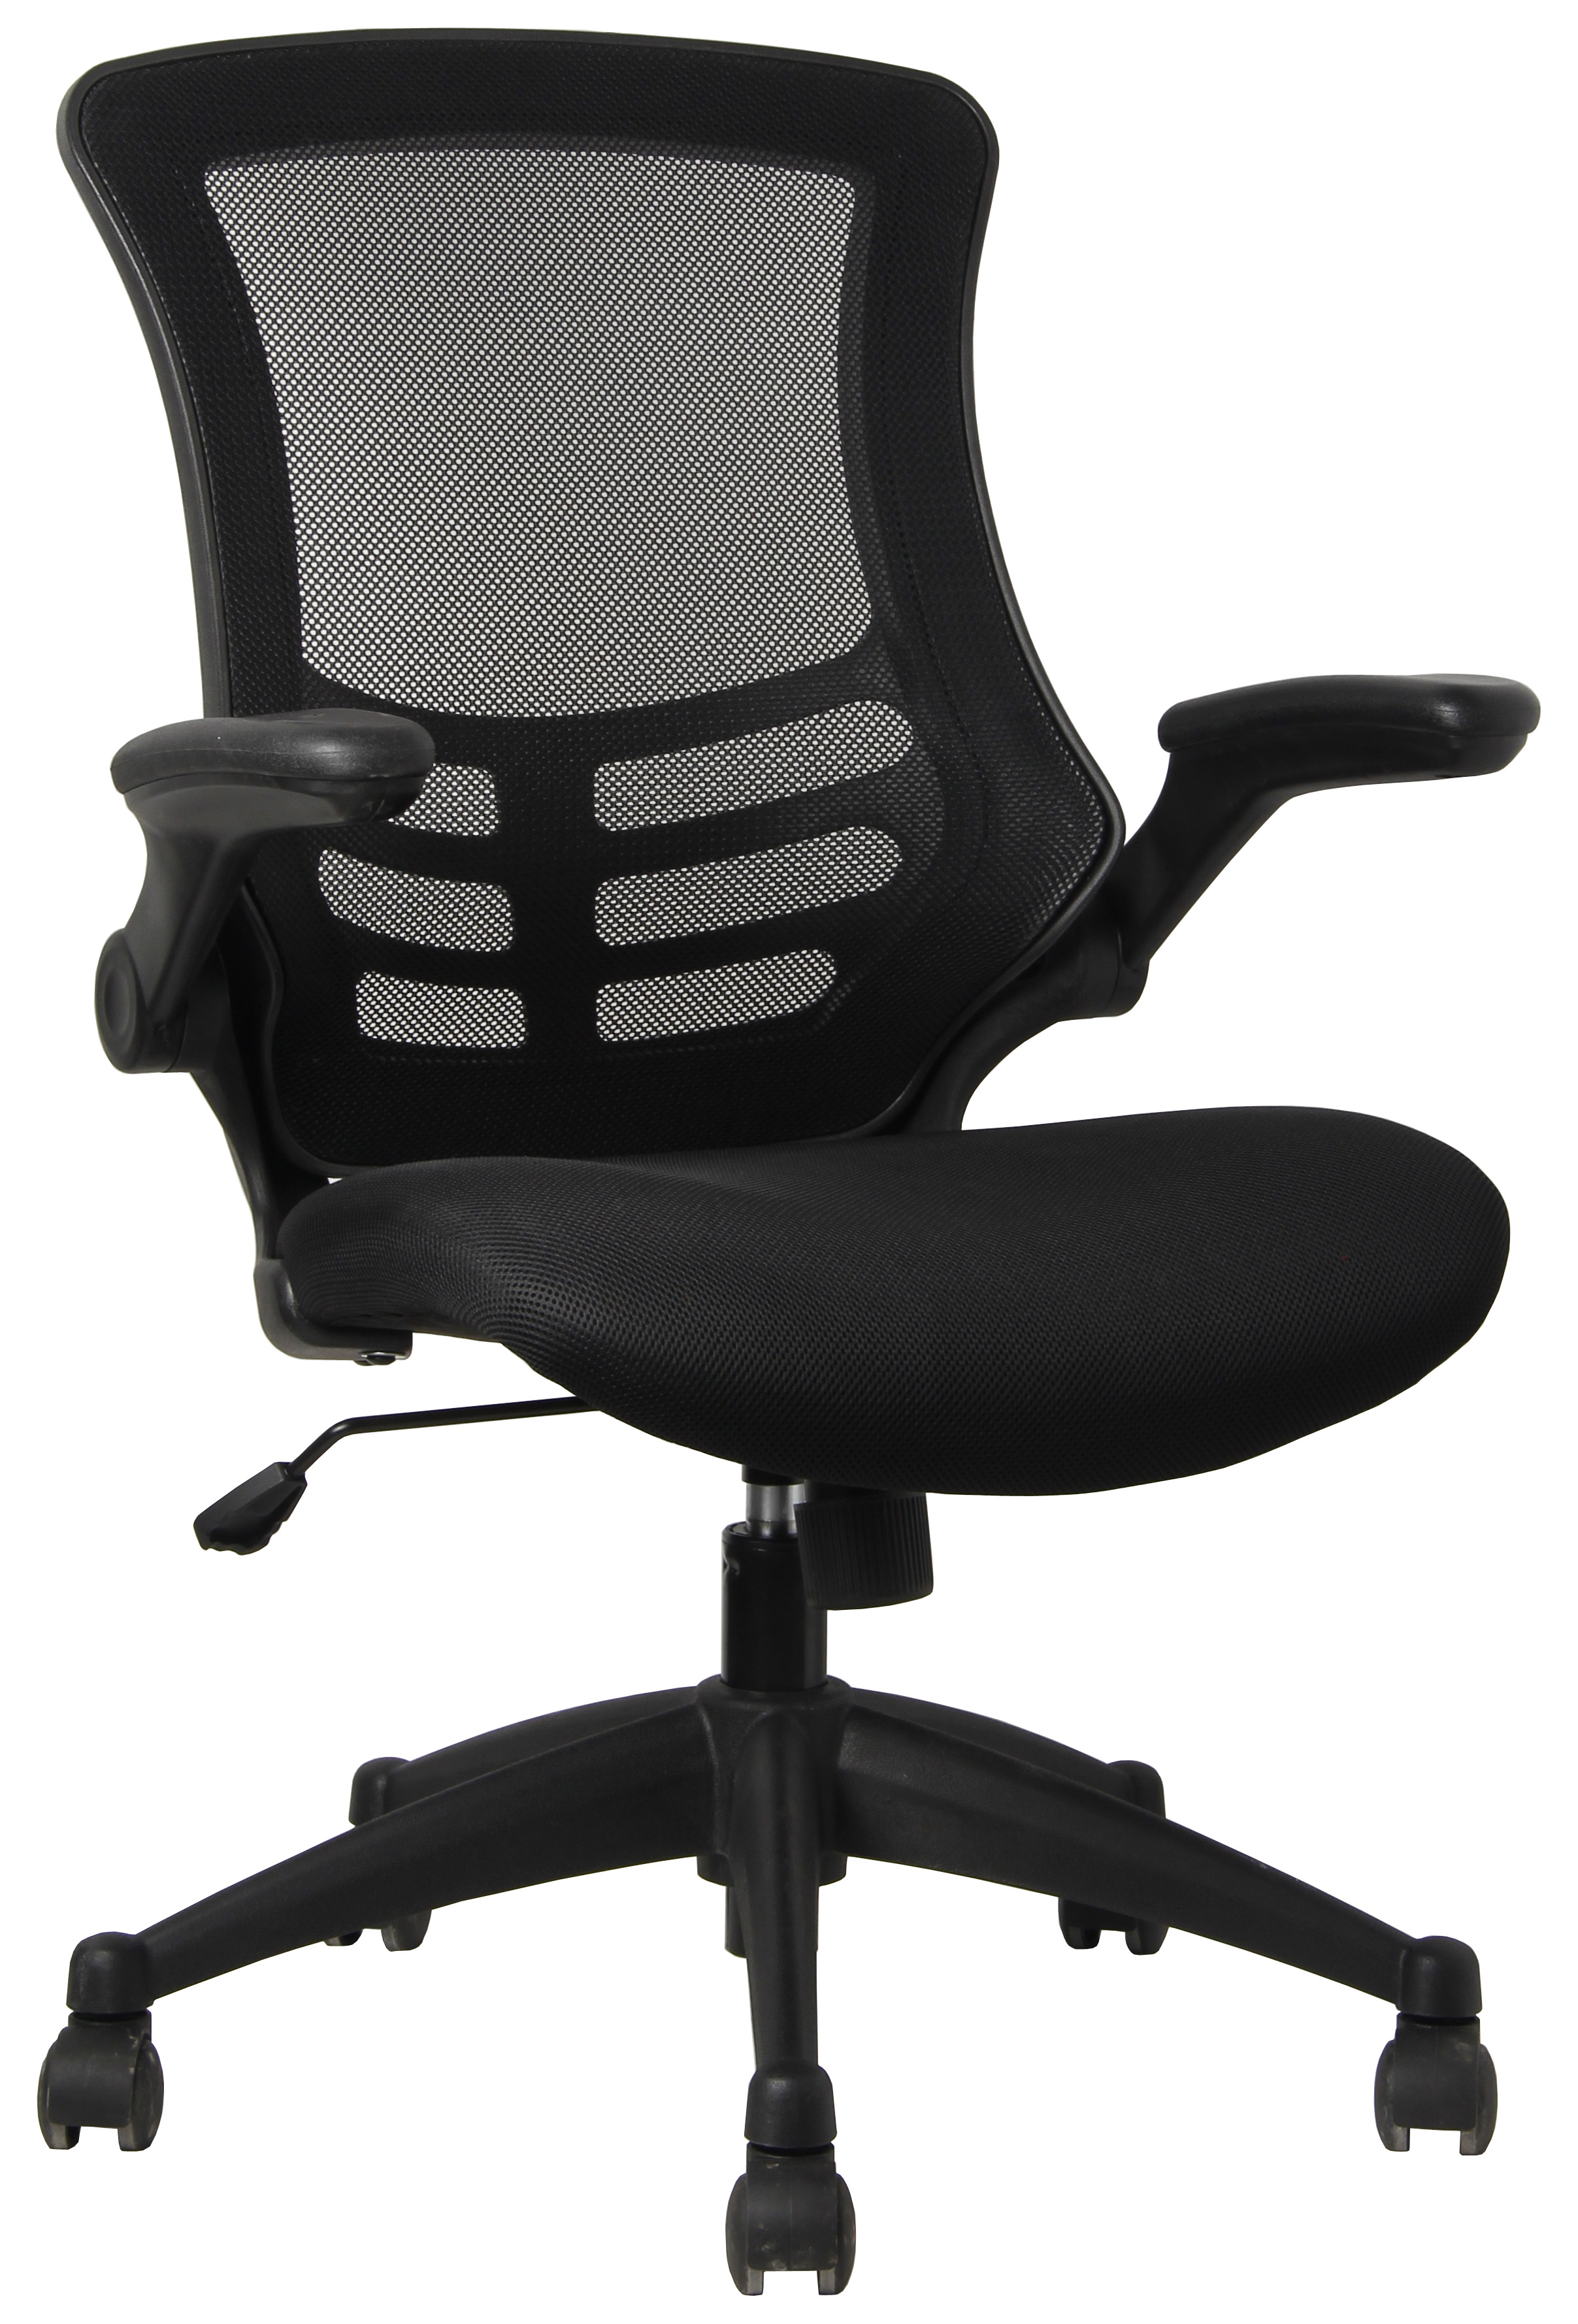 Office Chair Clearance New And Used Office Chairs Clearance And Second Hand Office